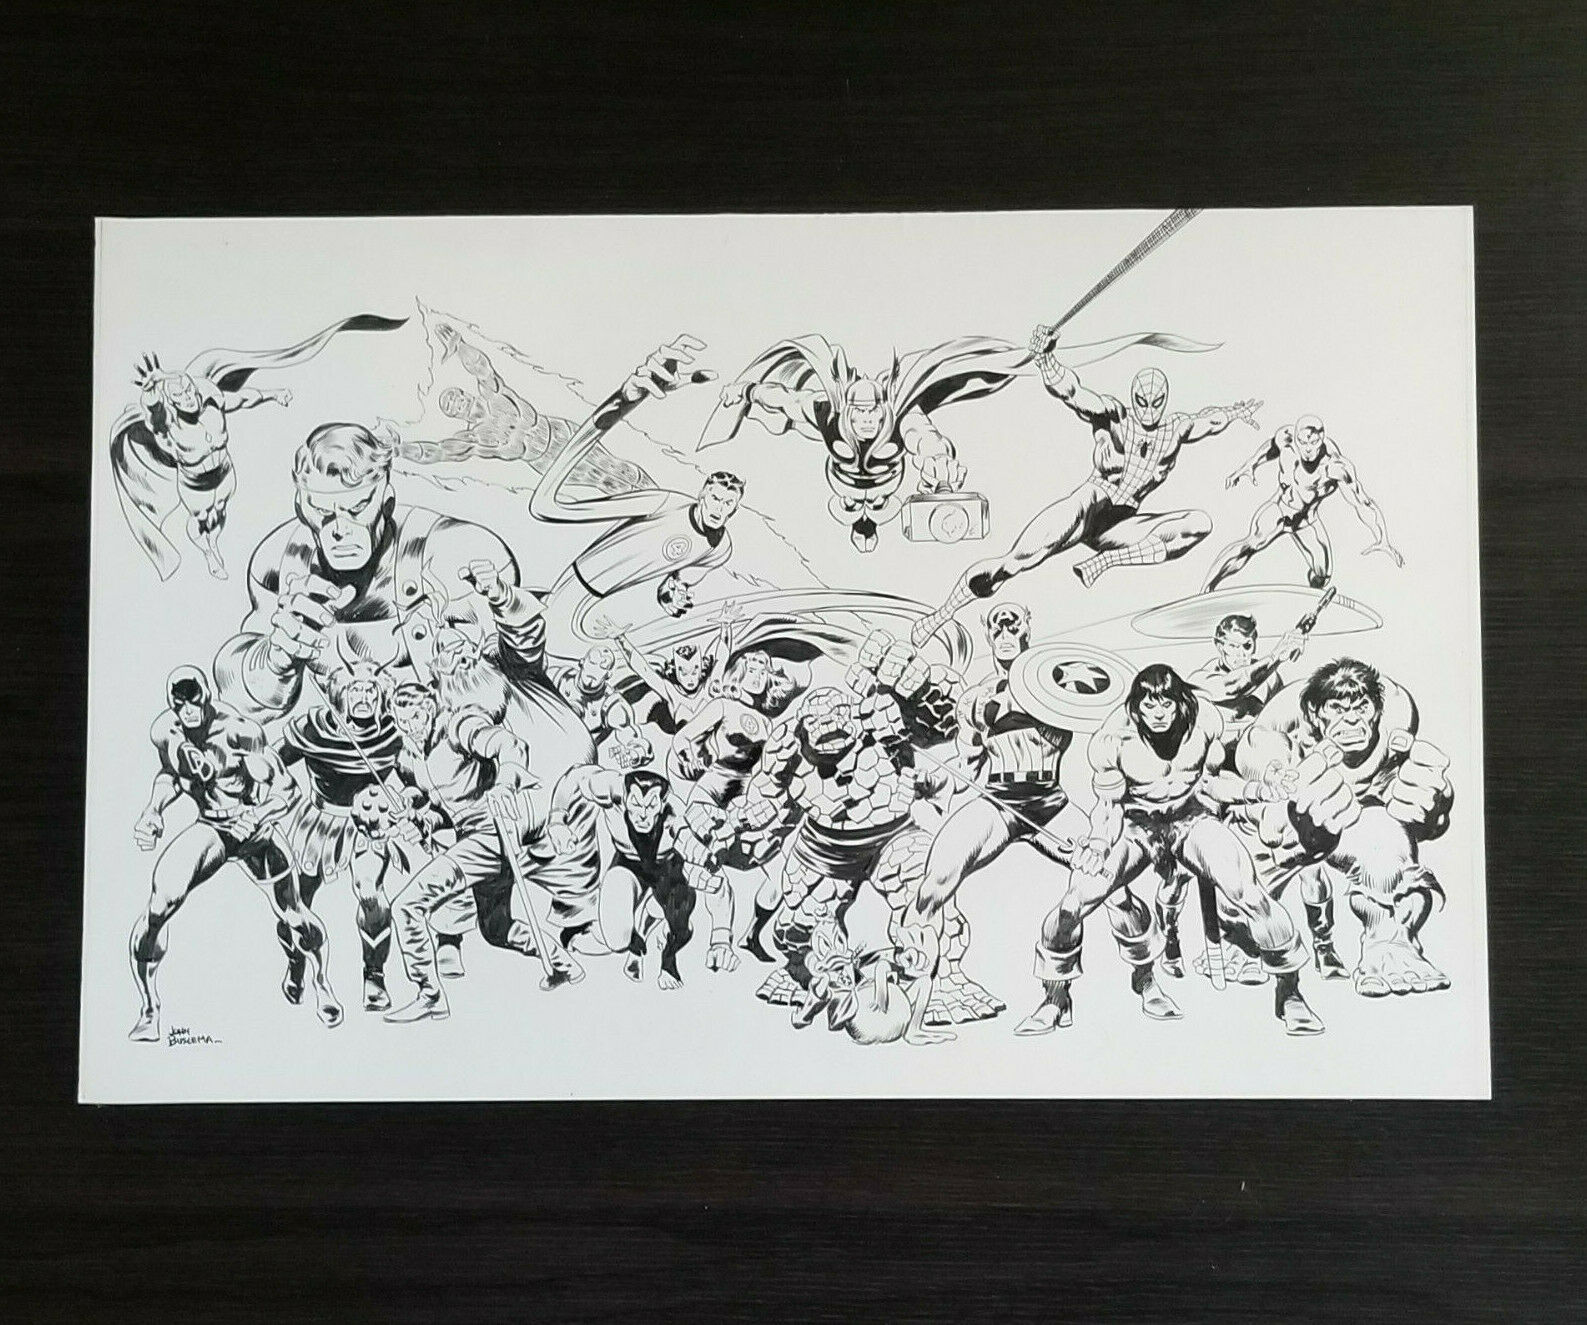 John Buscema FAMILY OWNED Original Artwork 1978 [1990s] Avengers Fantastic Four